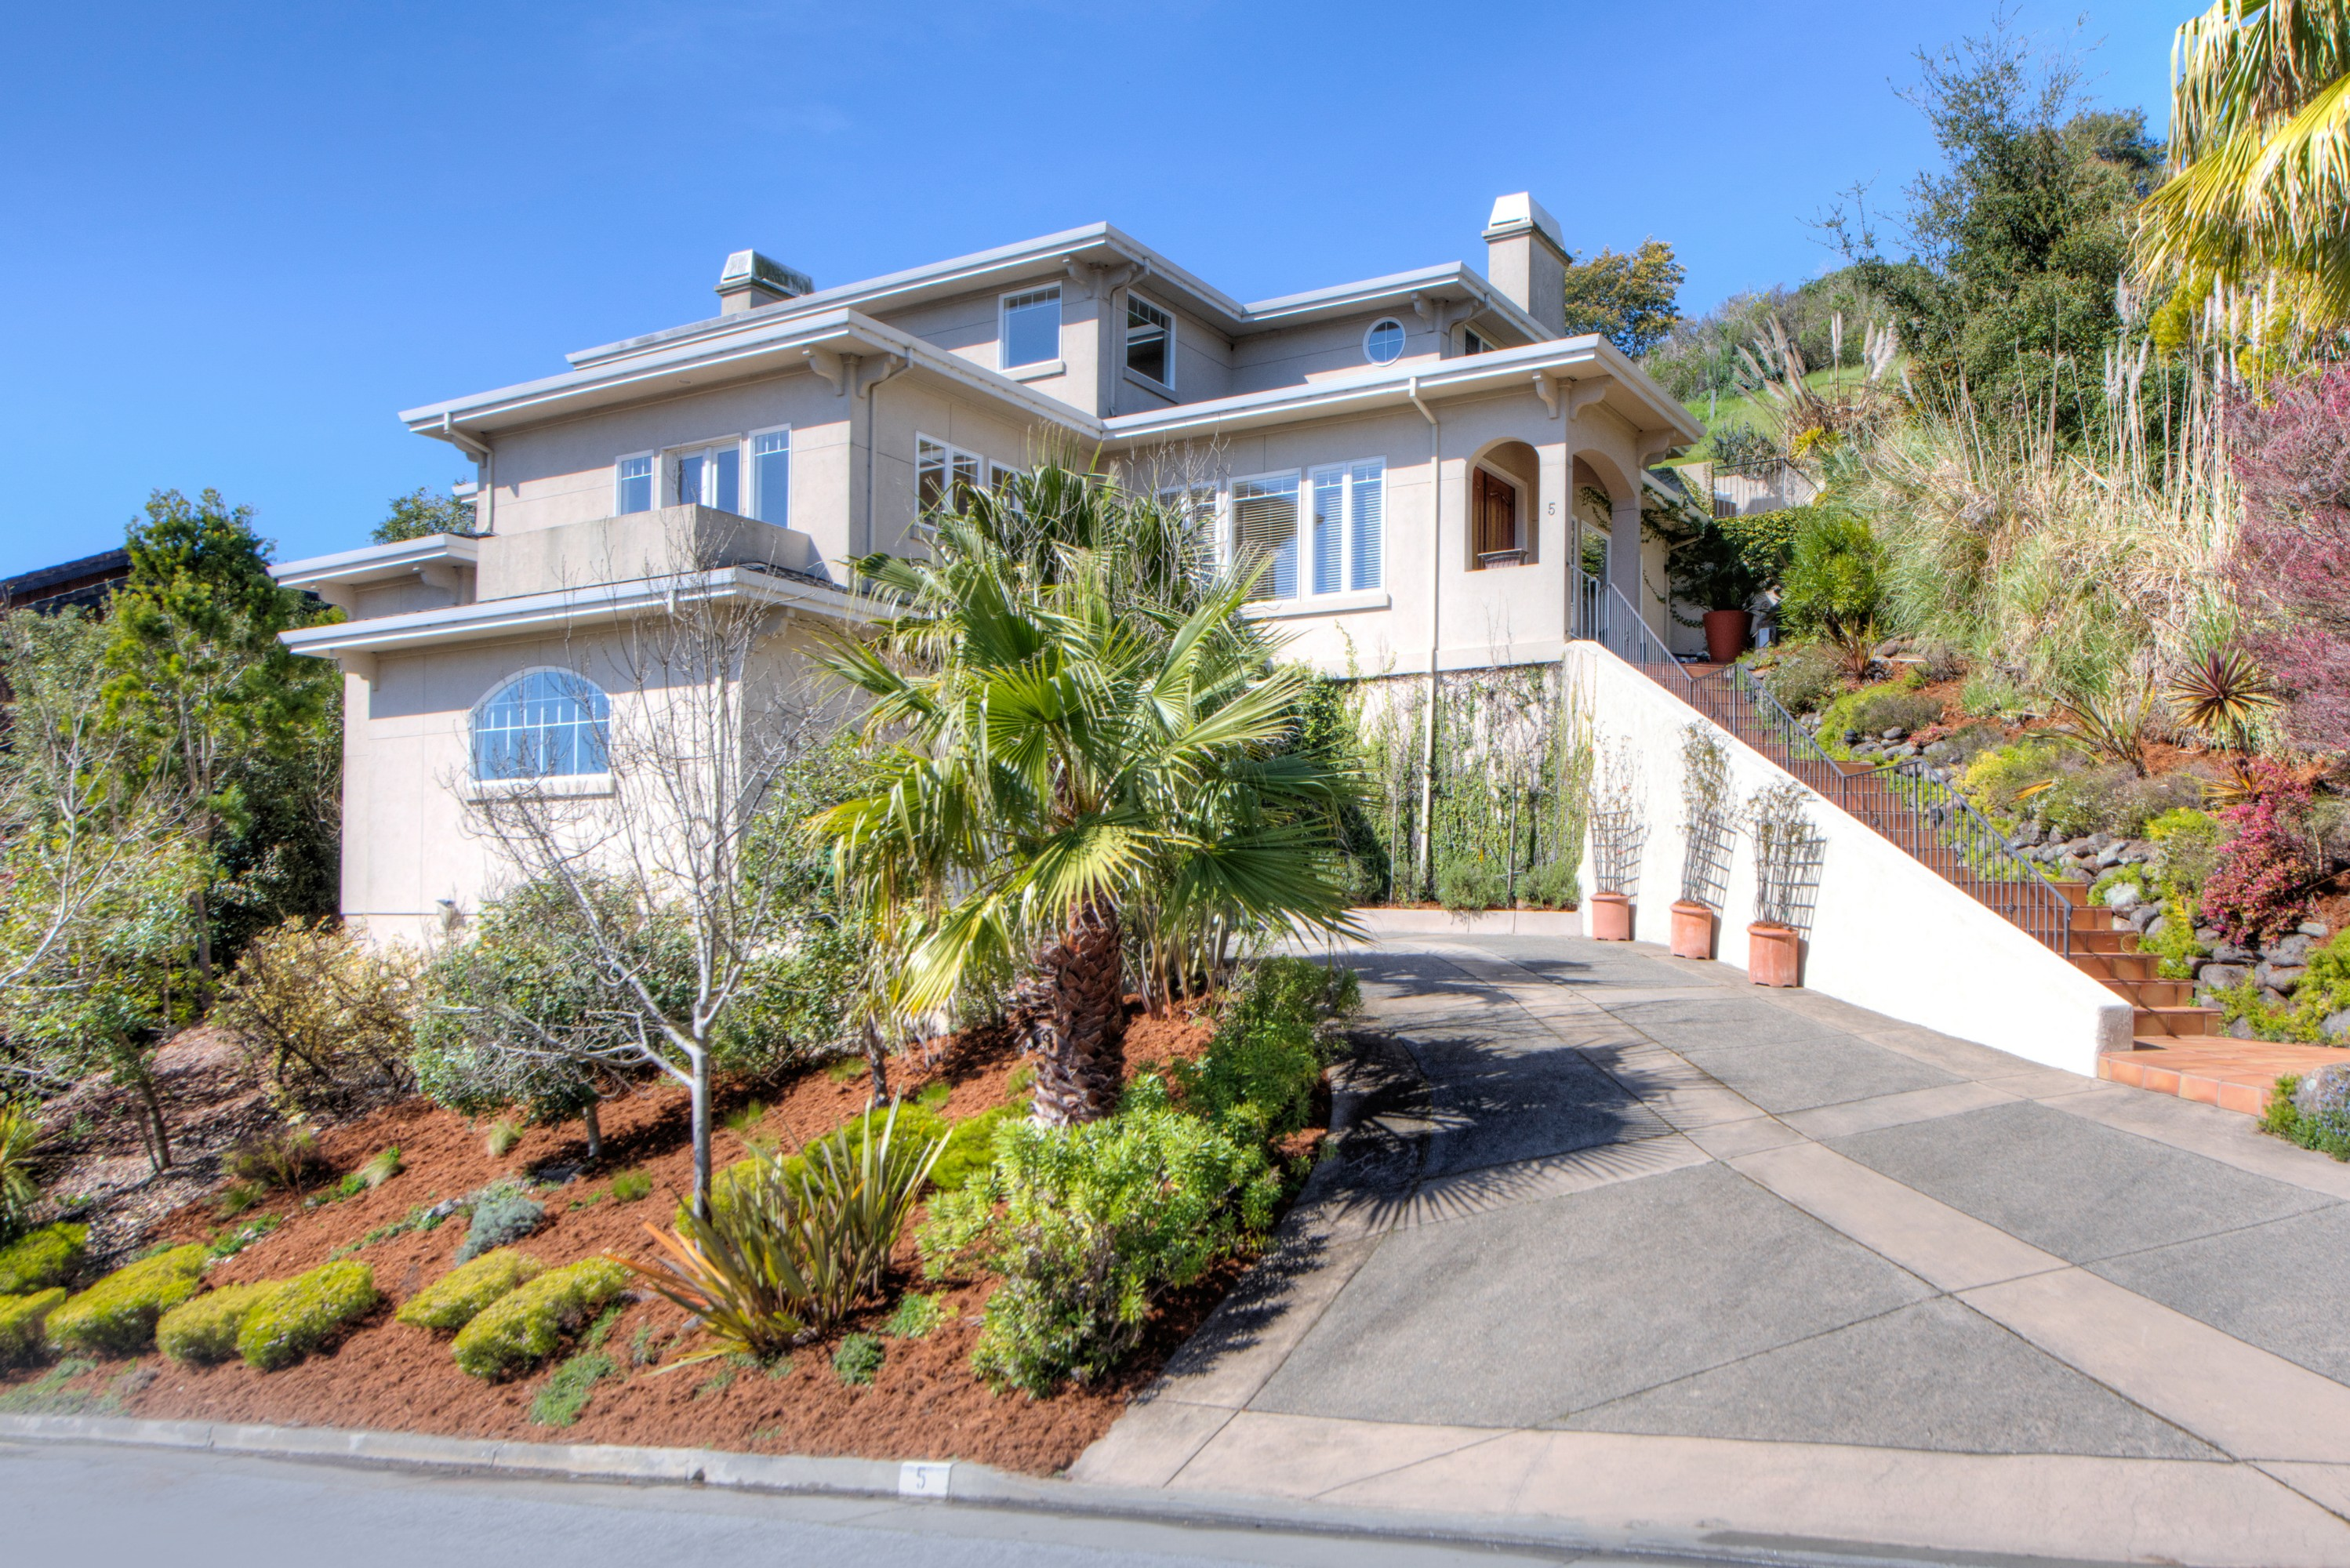 Single Family Home for Sale at Perfection & Elegance in Mill Valley 5 Vista Real Mill Valley, California 94941 United States